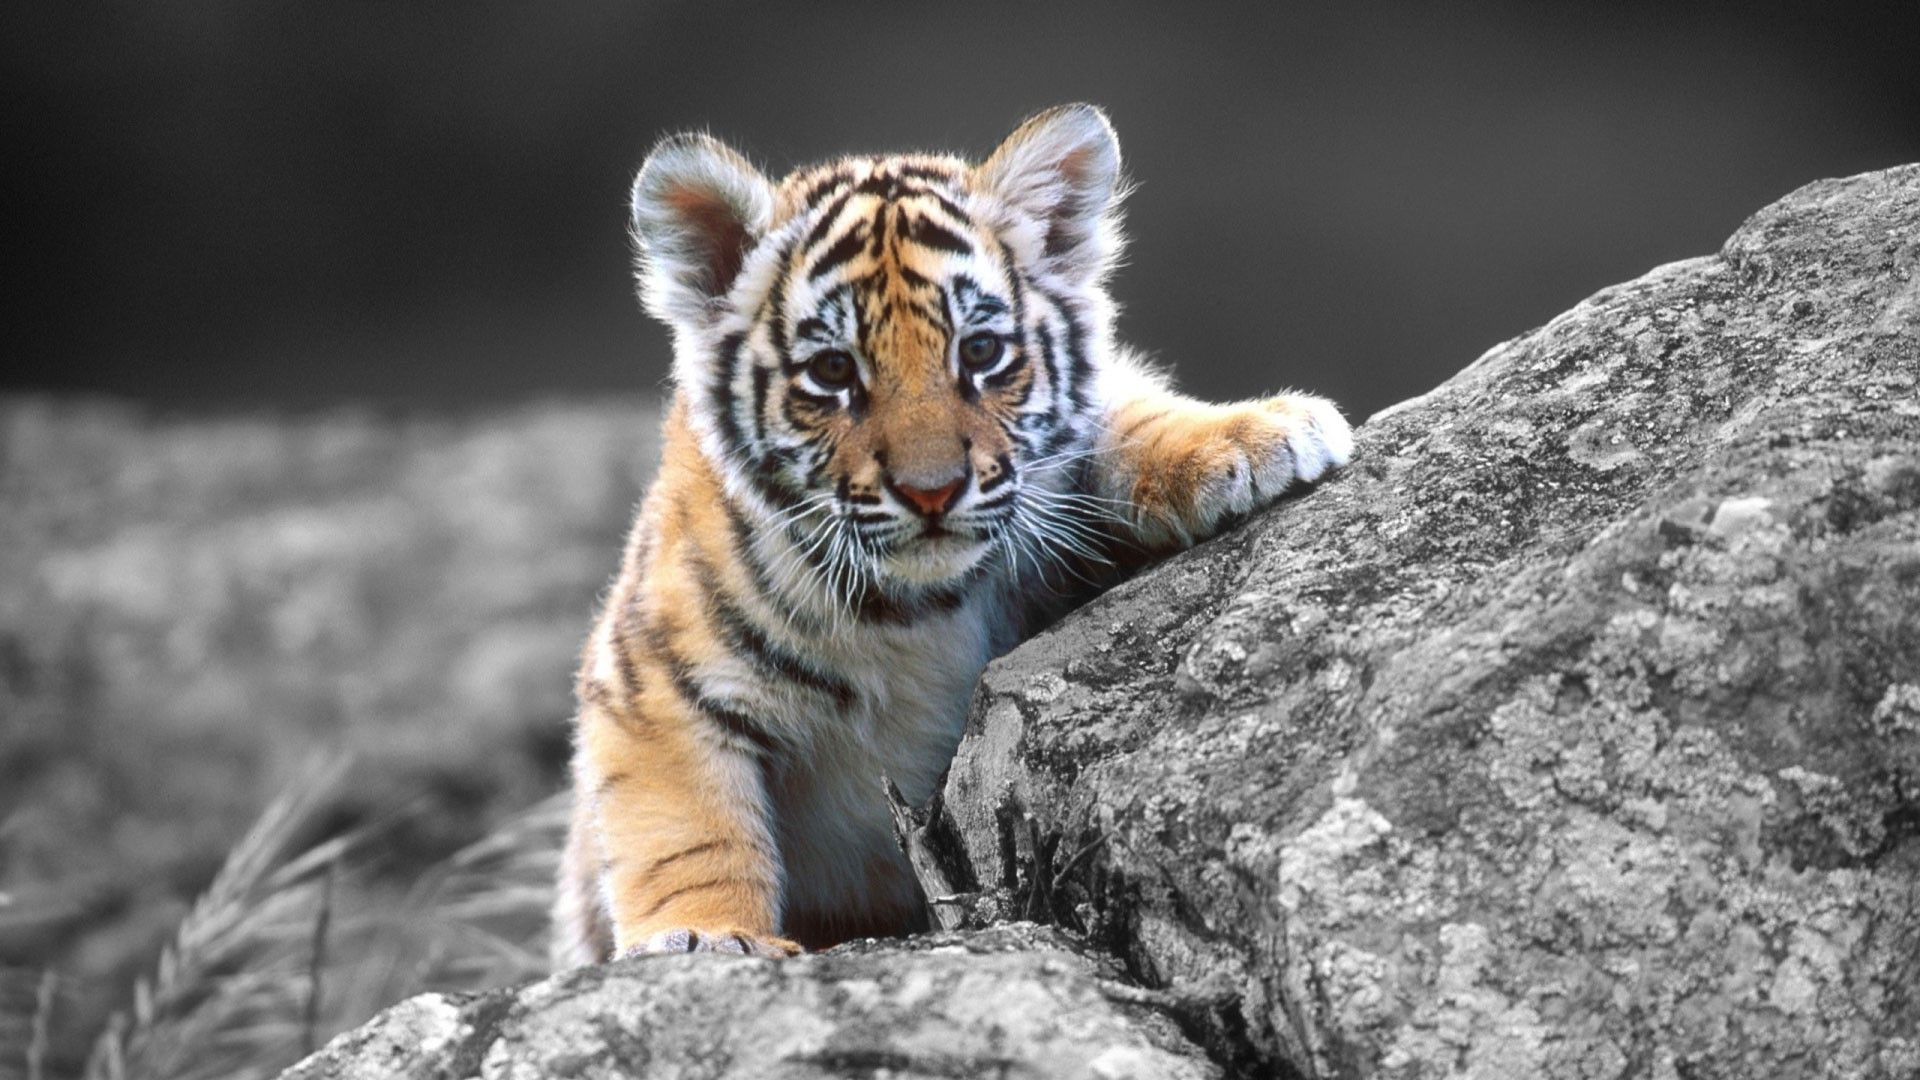 Animal Wallpaper Hd 1080p Free Download Fresh Animals Hd Wallpapers 1080p High Definition Wallpapers Walpepar An Tiger Images Tiger Pictures Animal Wallpaper